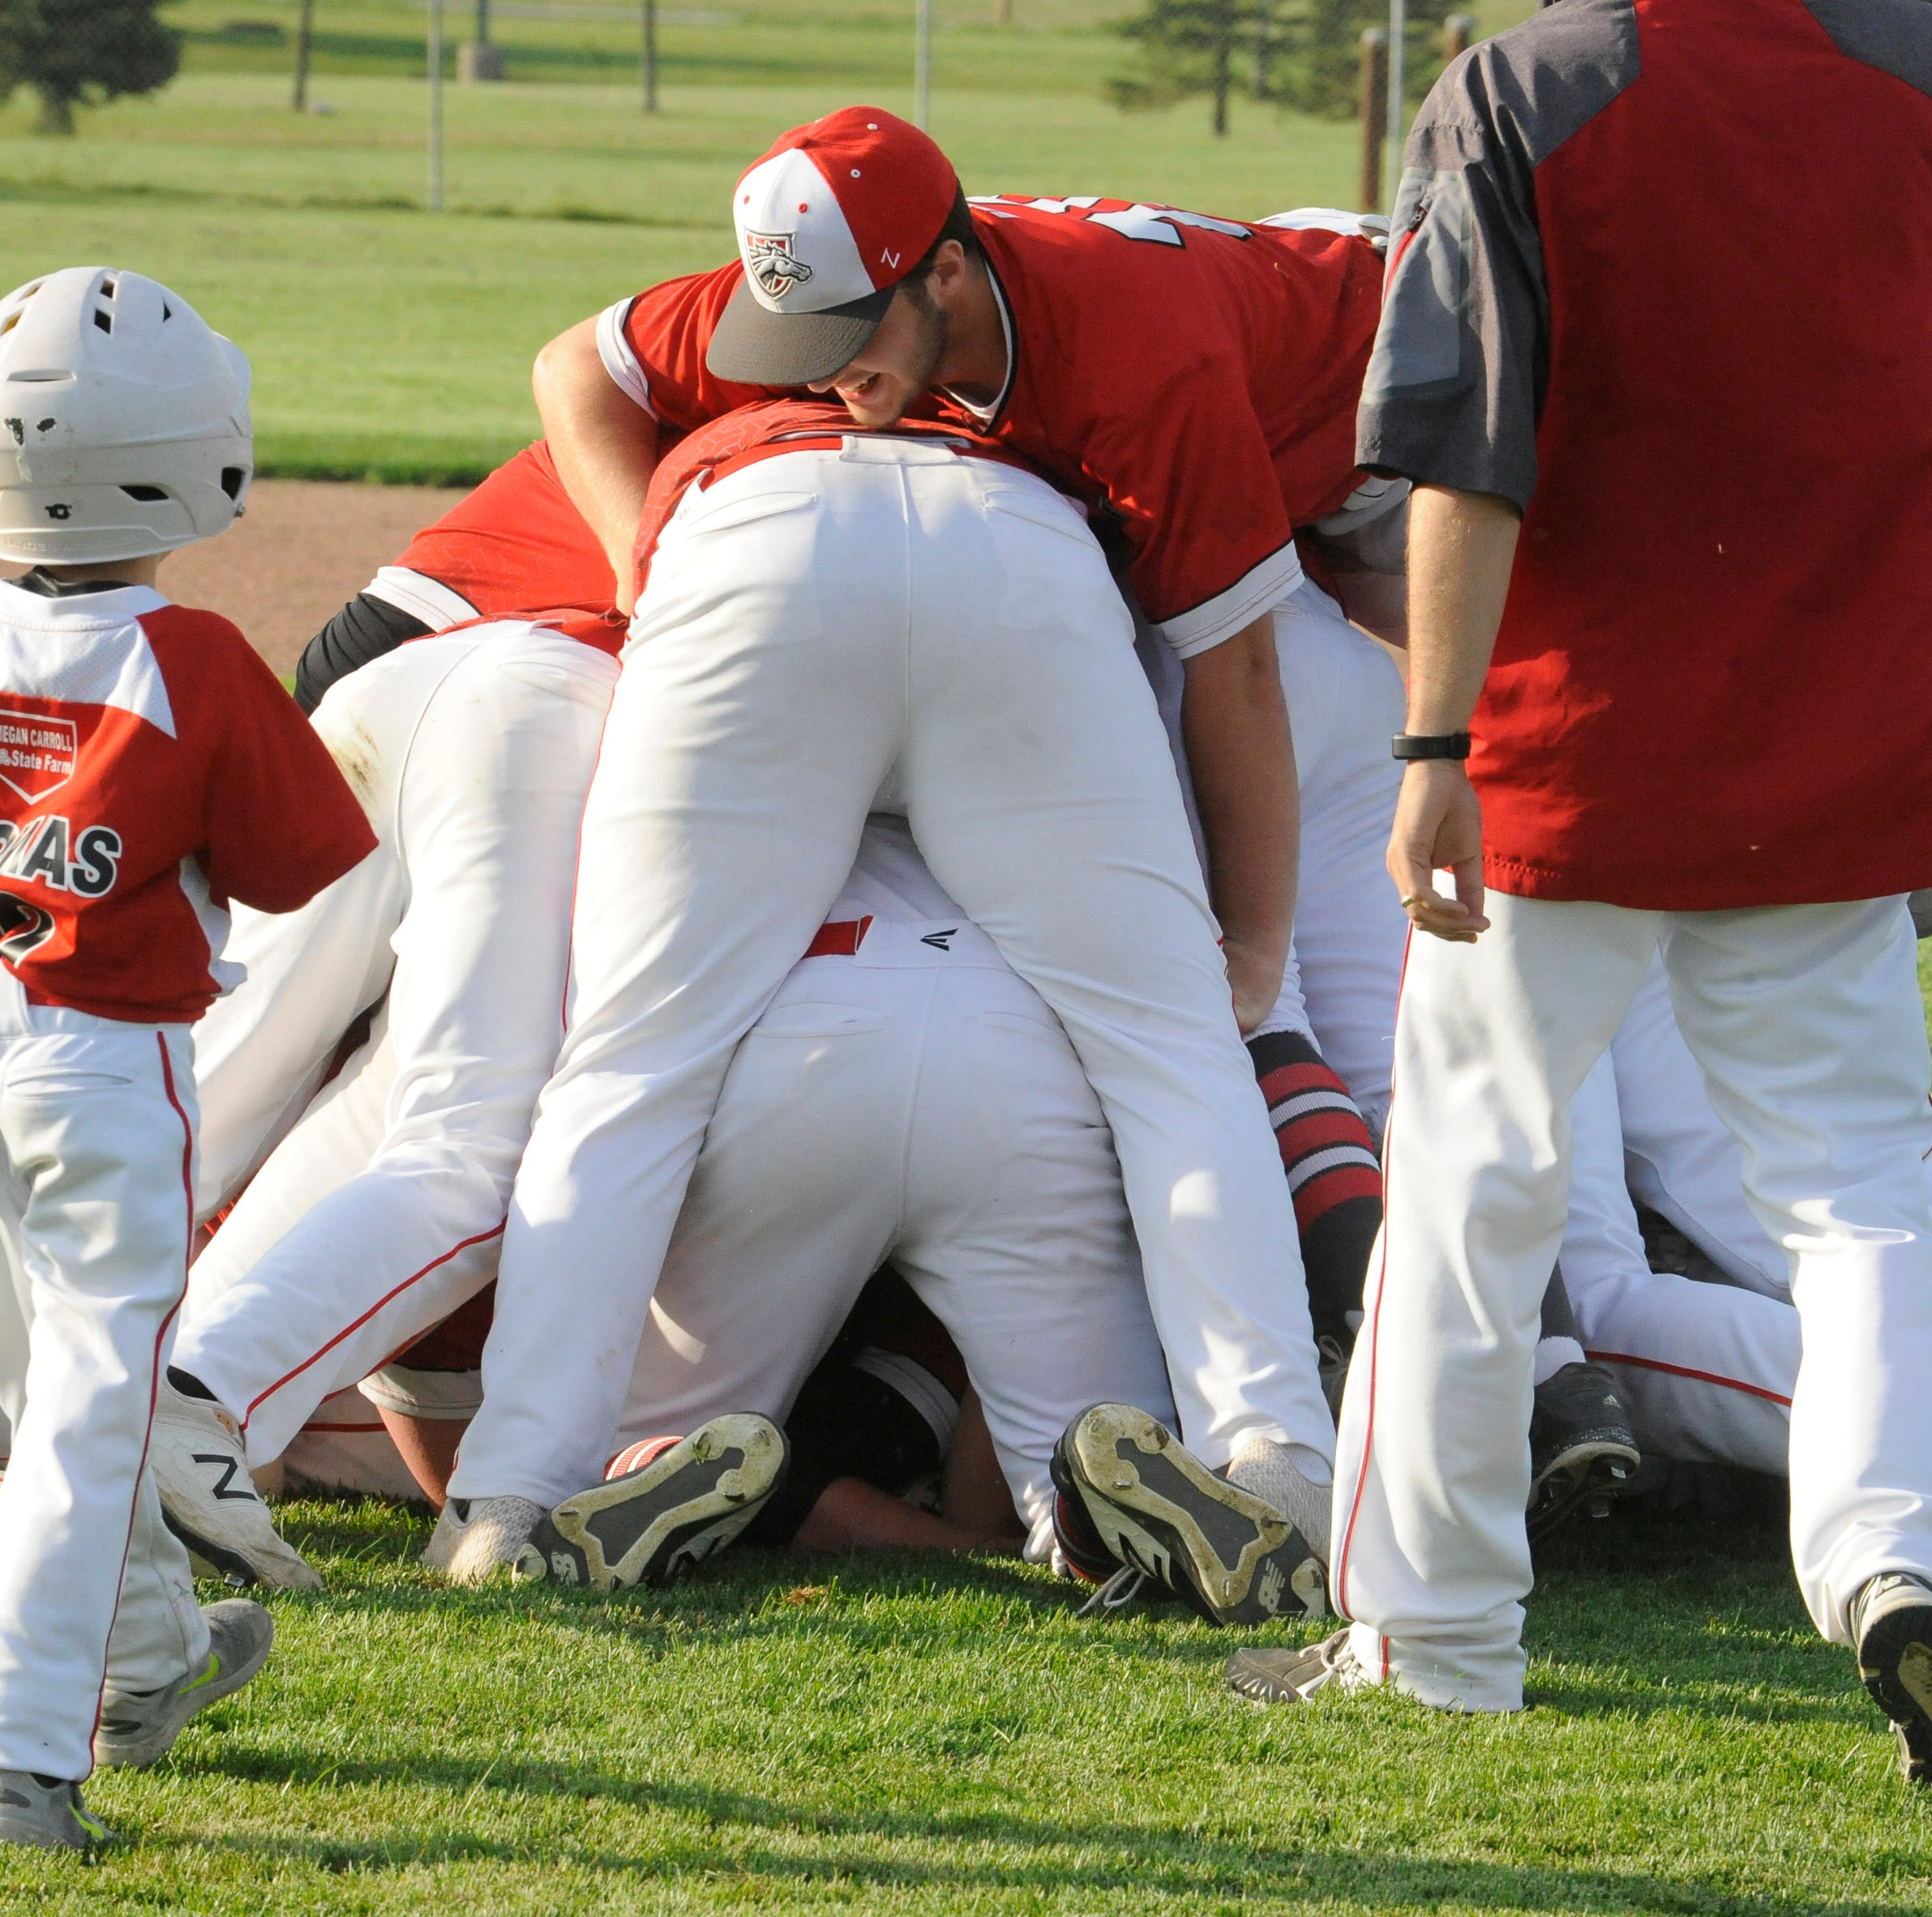 Westfall baseball wins first SVC title since 2010 with 8-2 win over Zane Trace